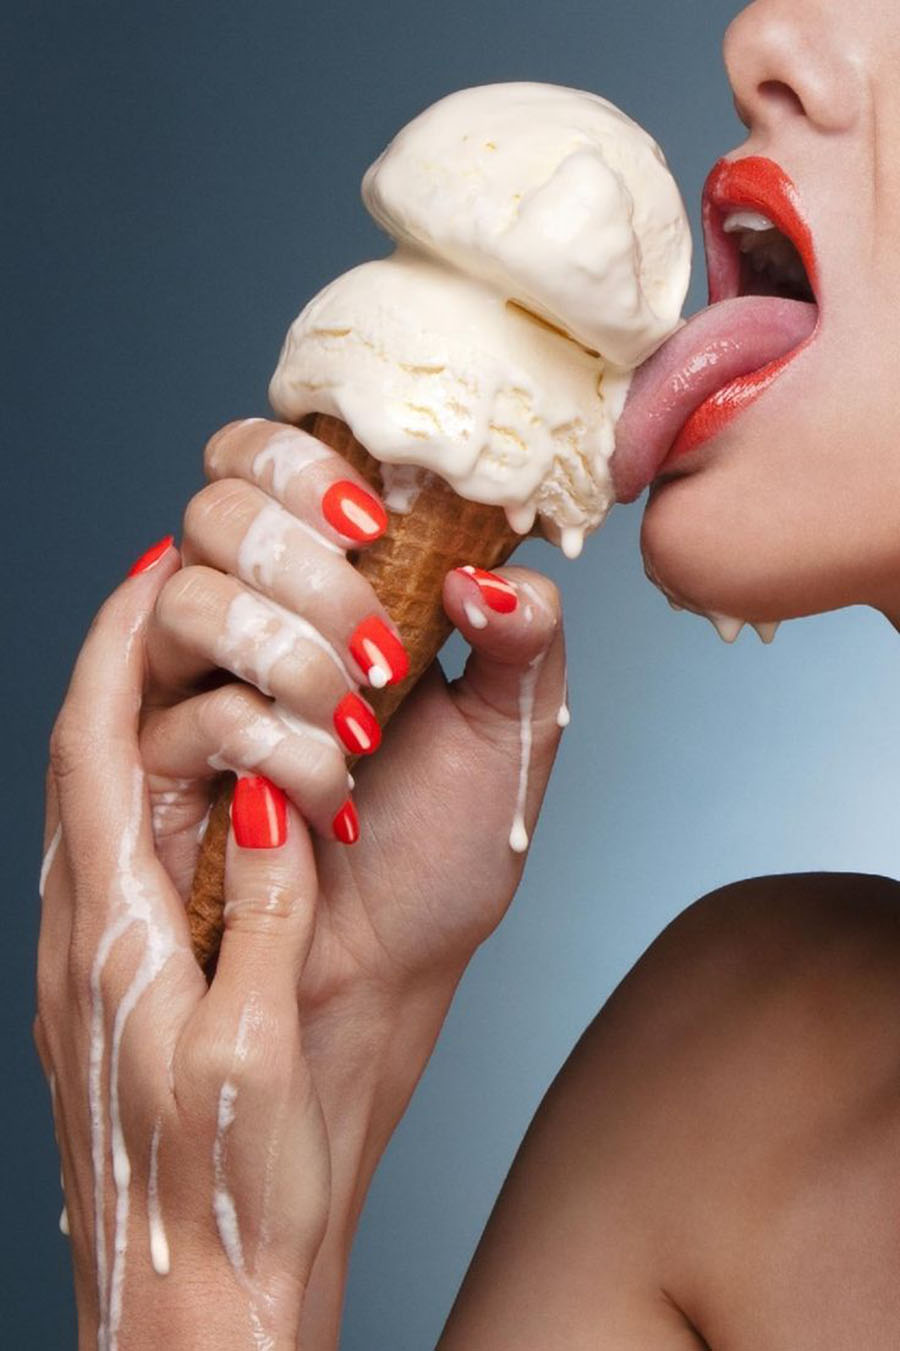 Licking Flowing Ice Cream 900x